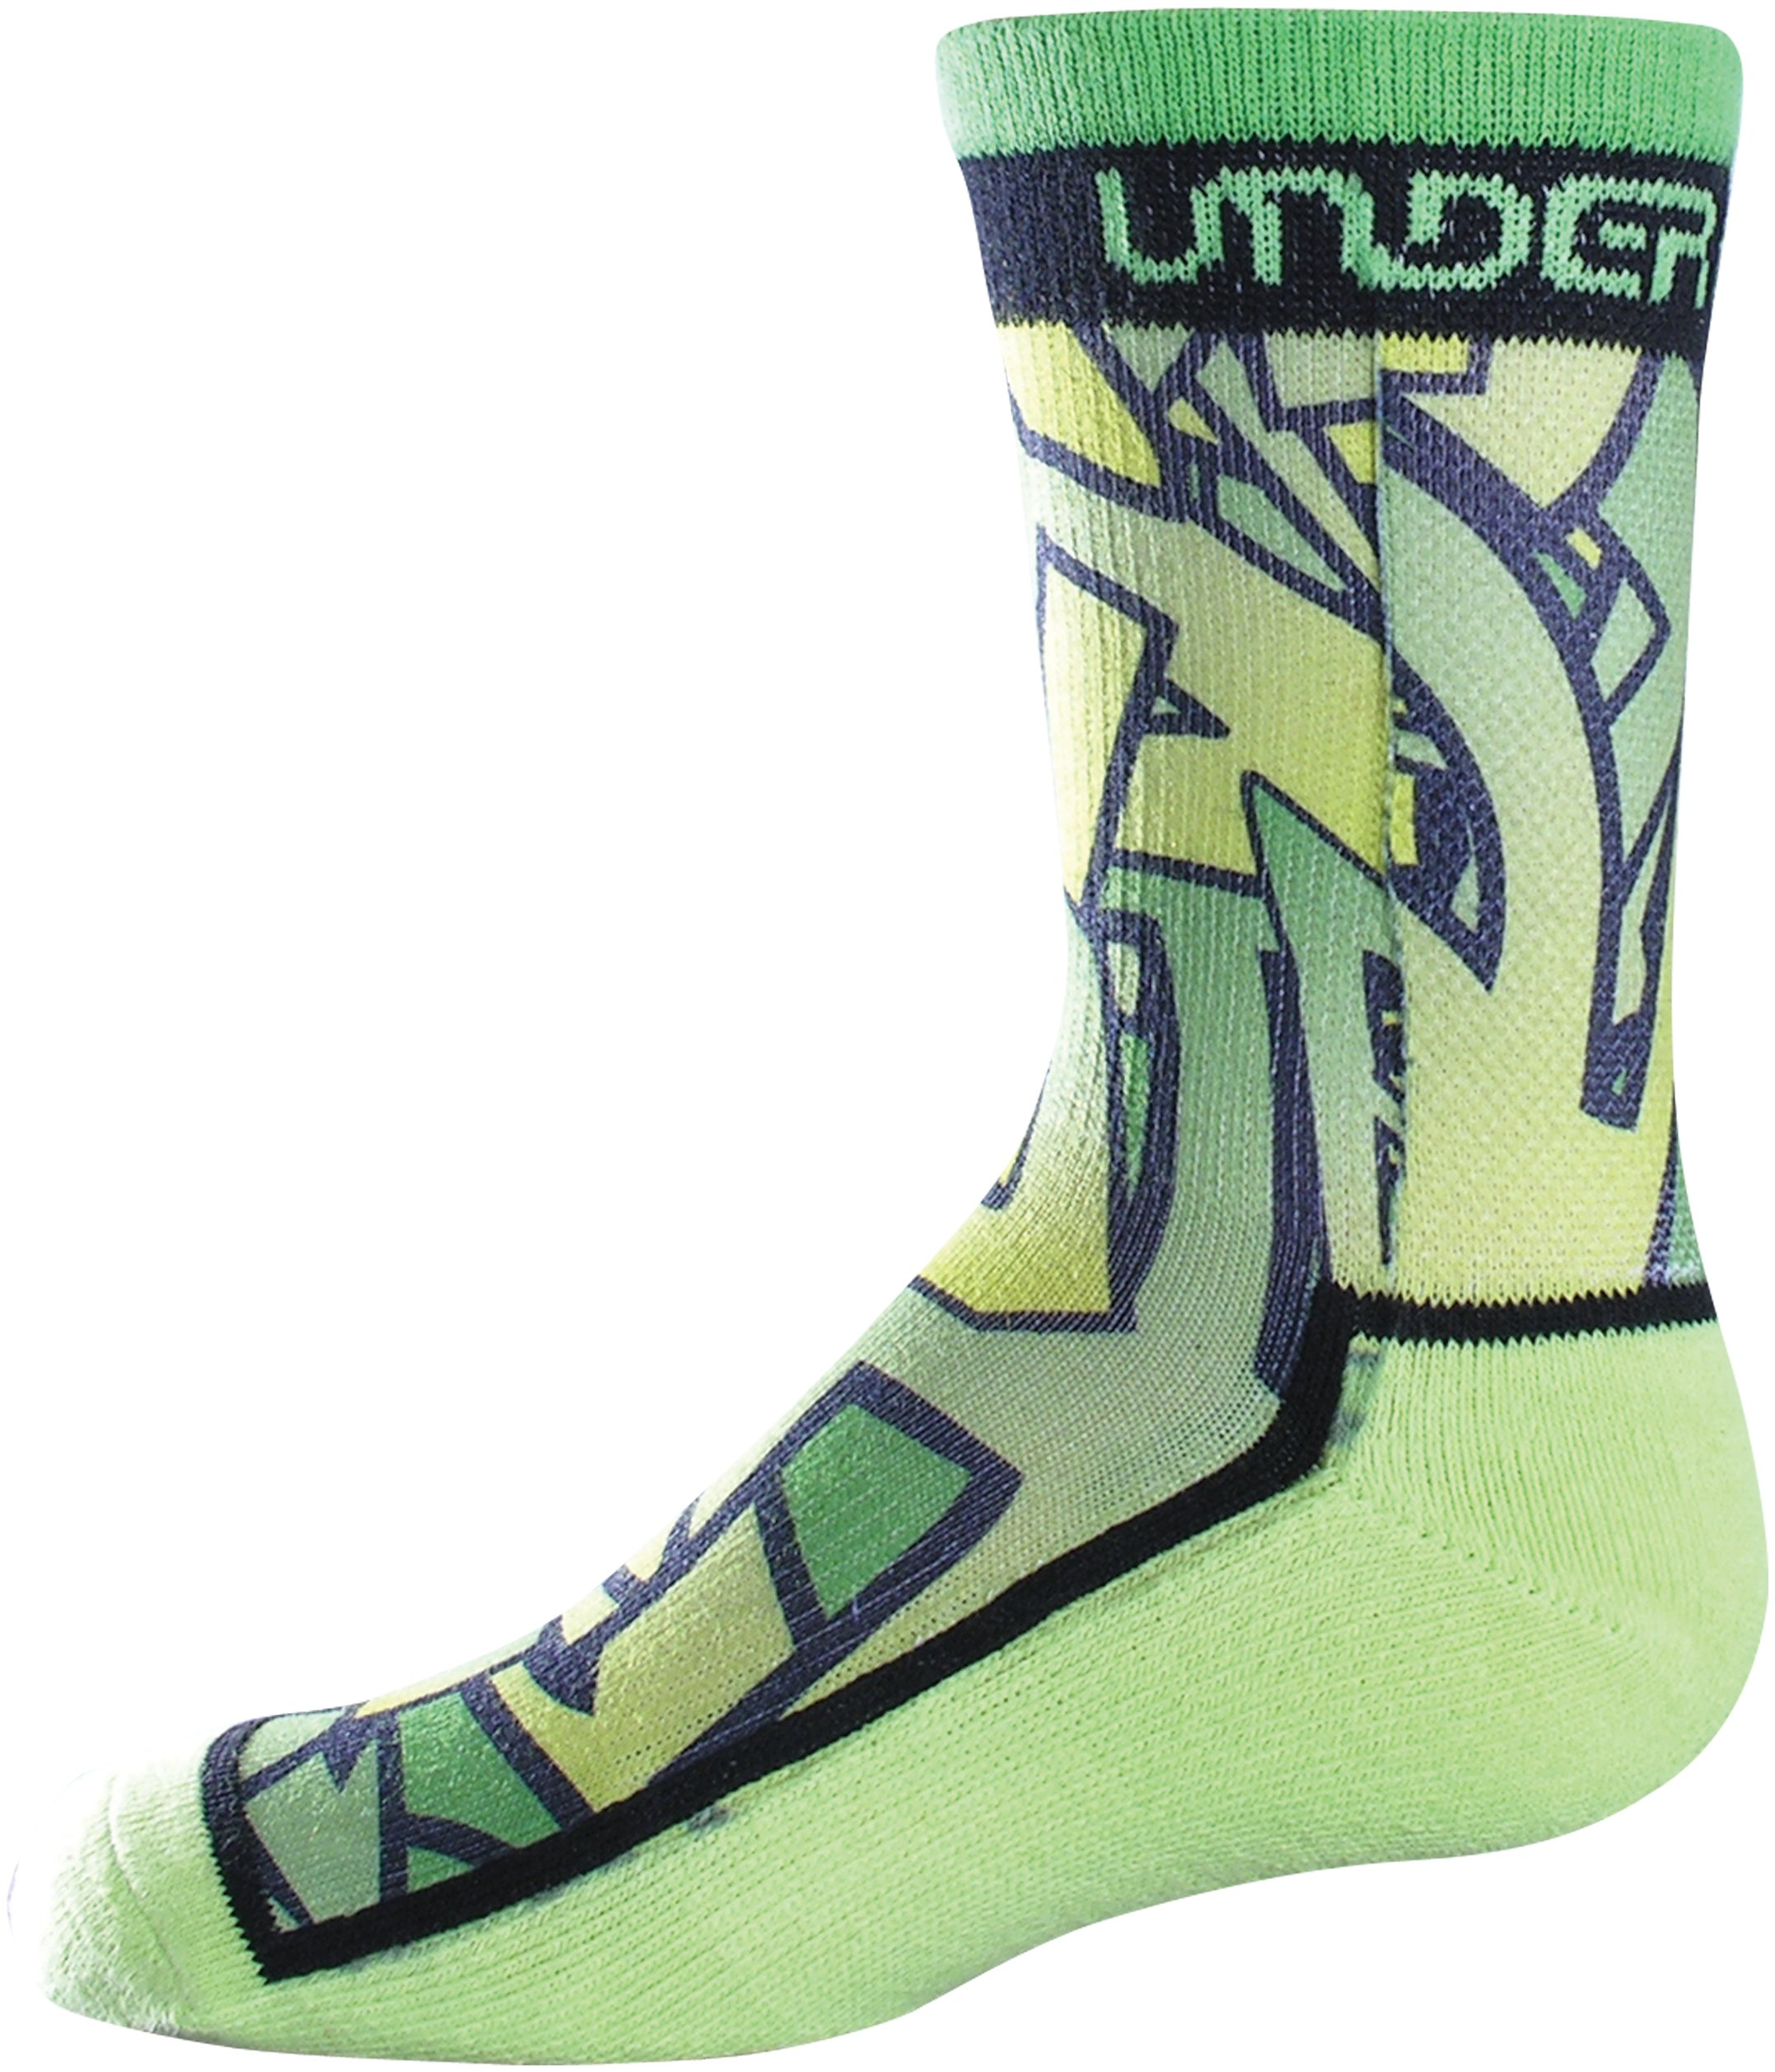 Boys' UA Pixaprint Sublimated Crew Socks, High-Vis Yellow